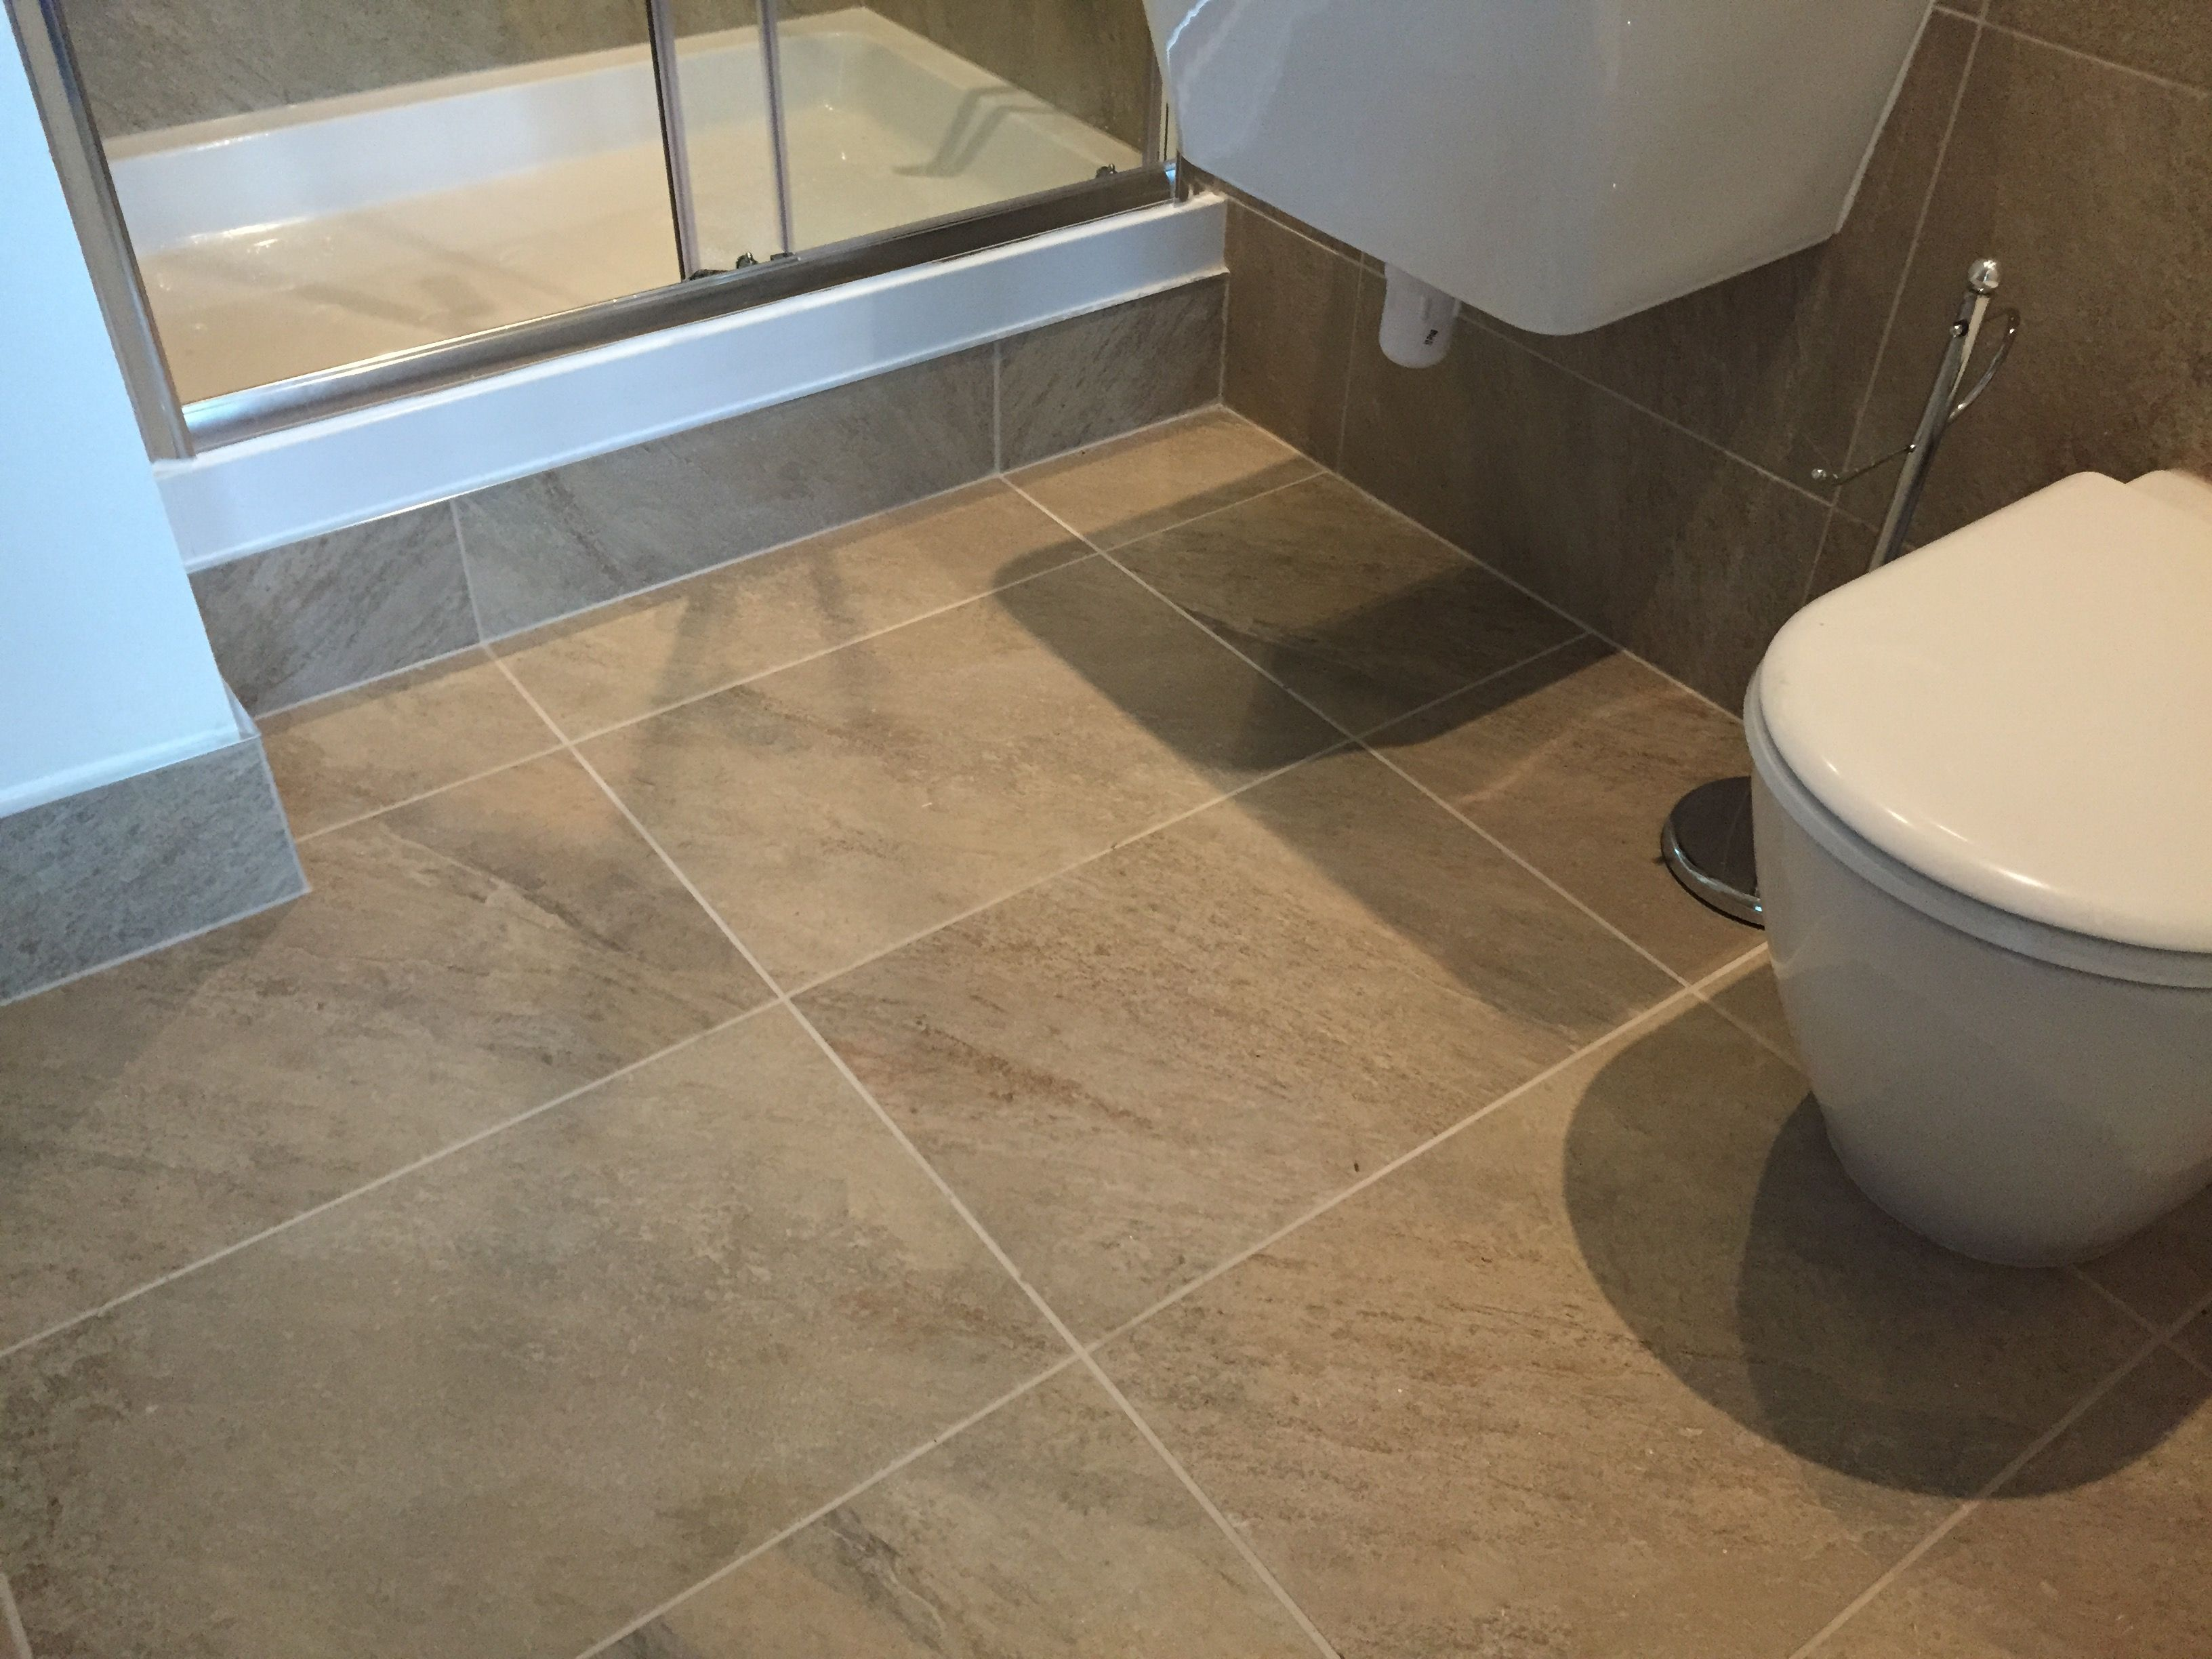 Floor tiles are the same as the wall tiles no1 deansgate floor tiles are the same as the wall tiles dailygadgetfo Images